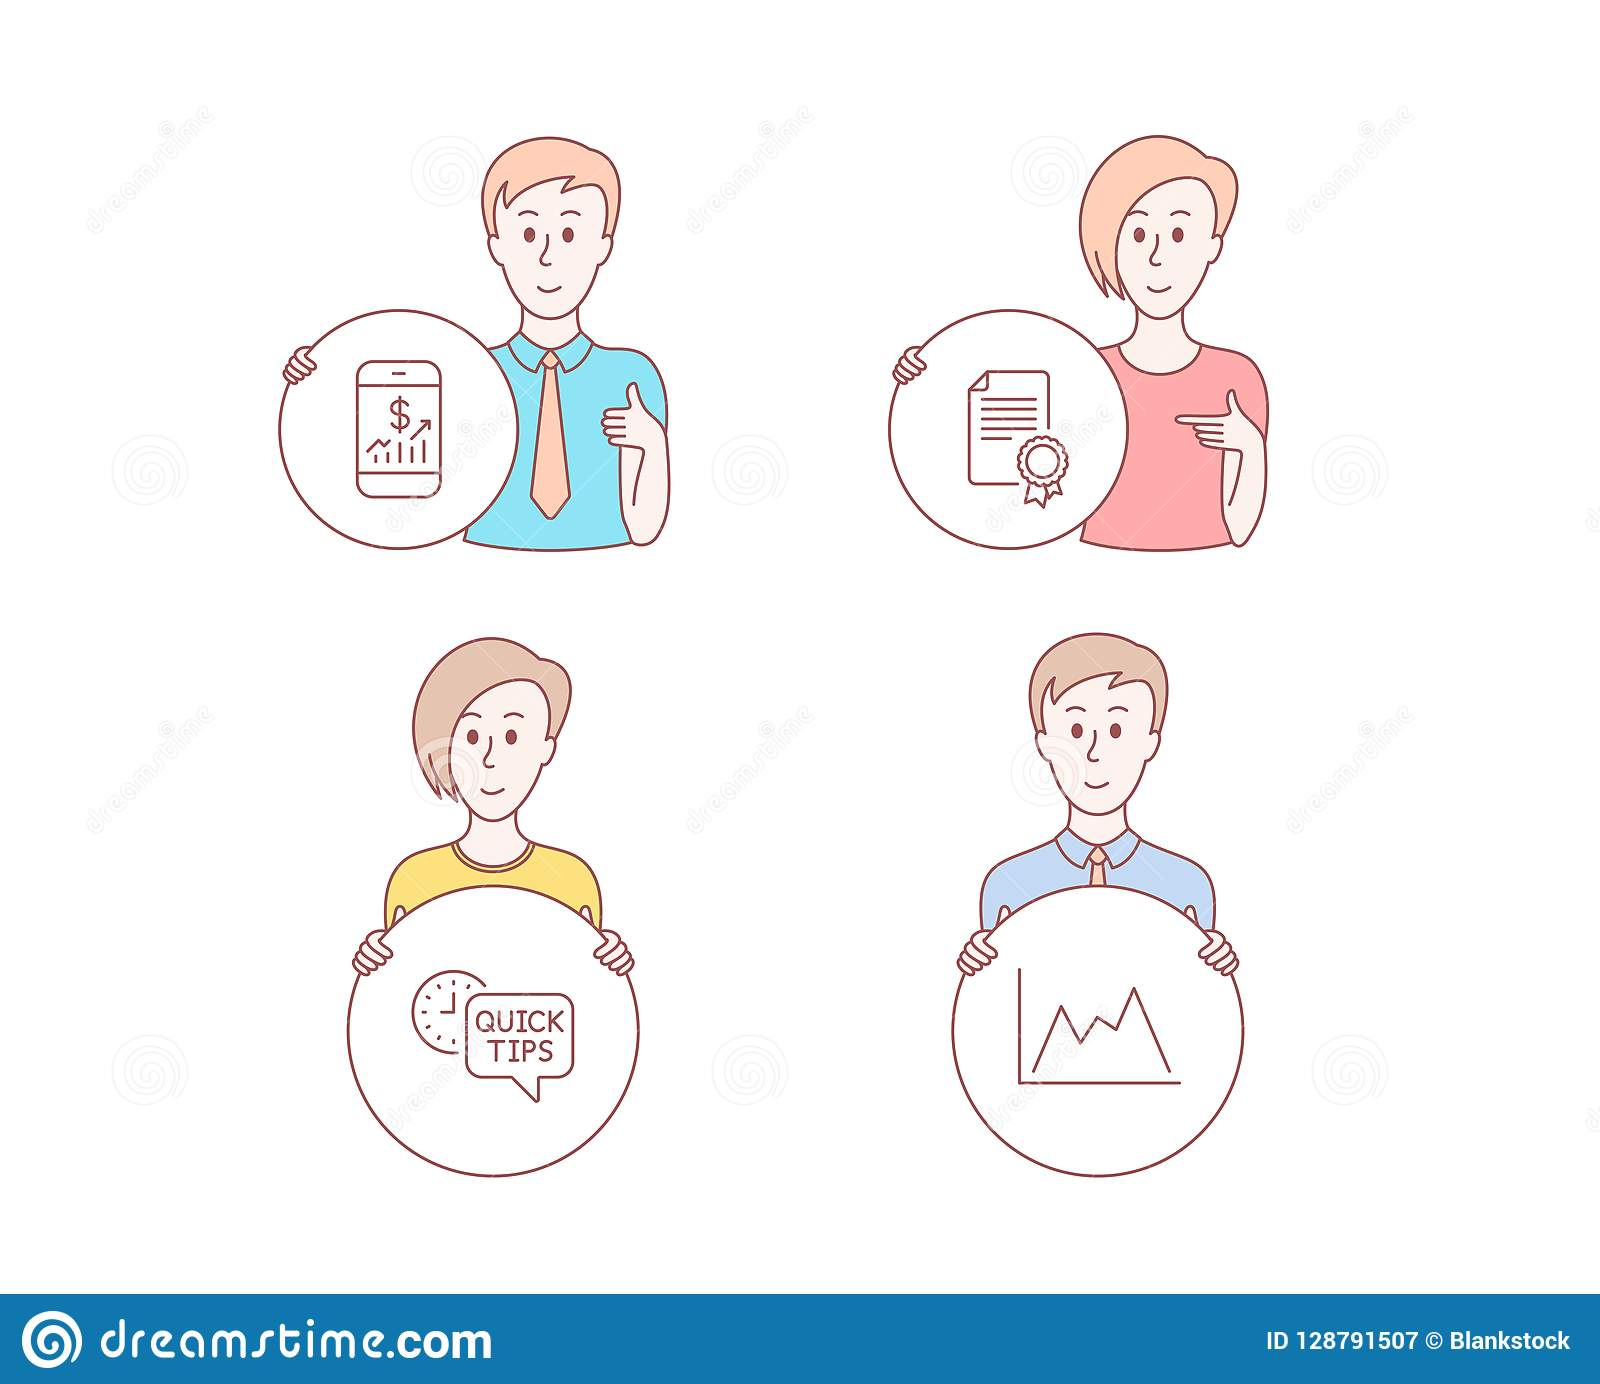 Certificate, Mobile Finance And Quick Tips Icons  Diagram